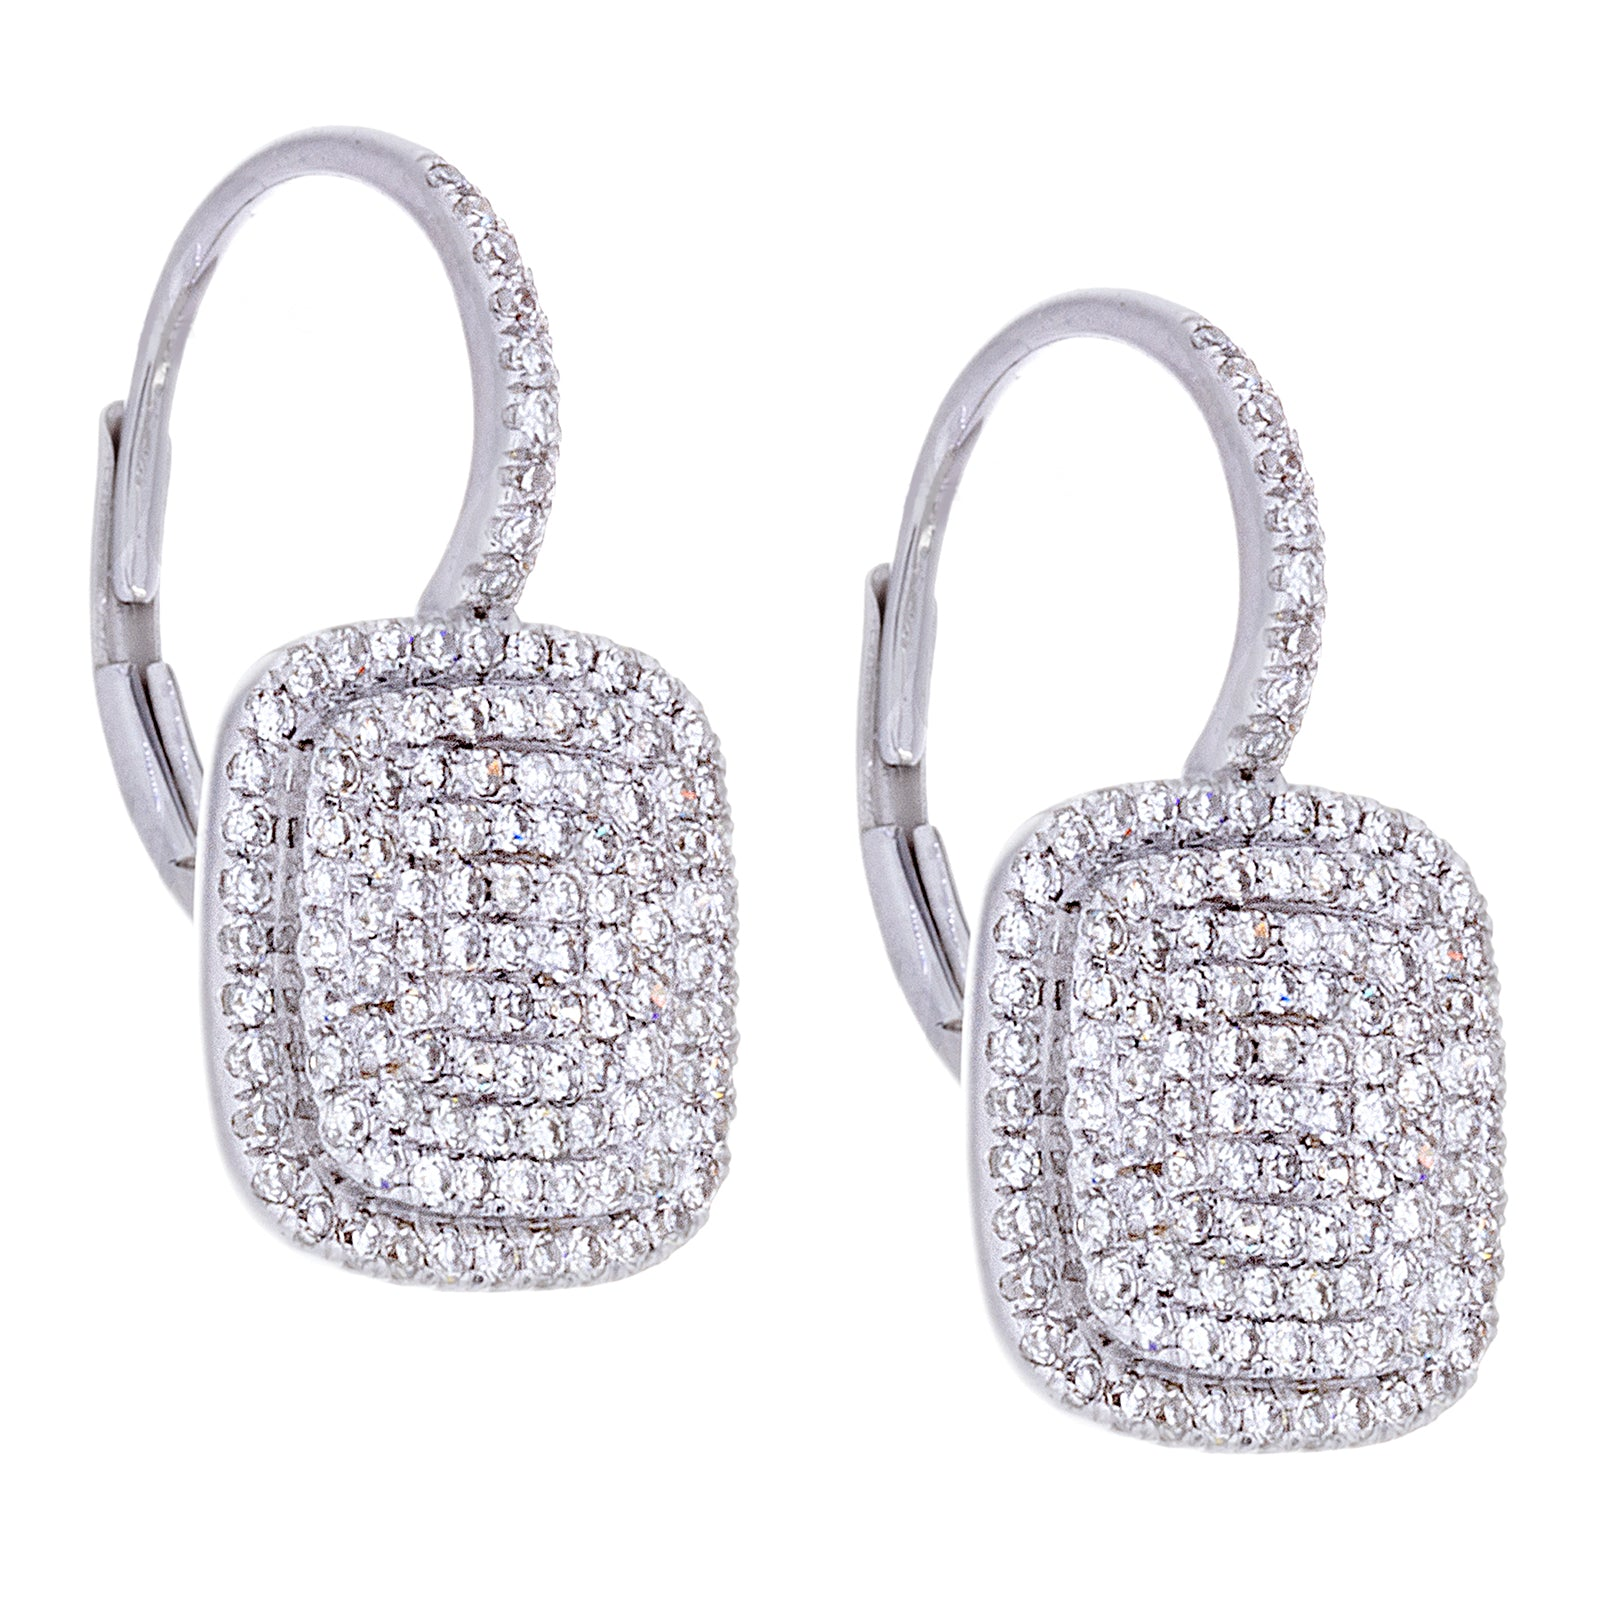 Diamonds Pave & 14K White Gold Earrings - SOLD